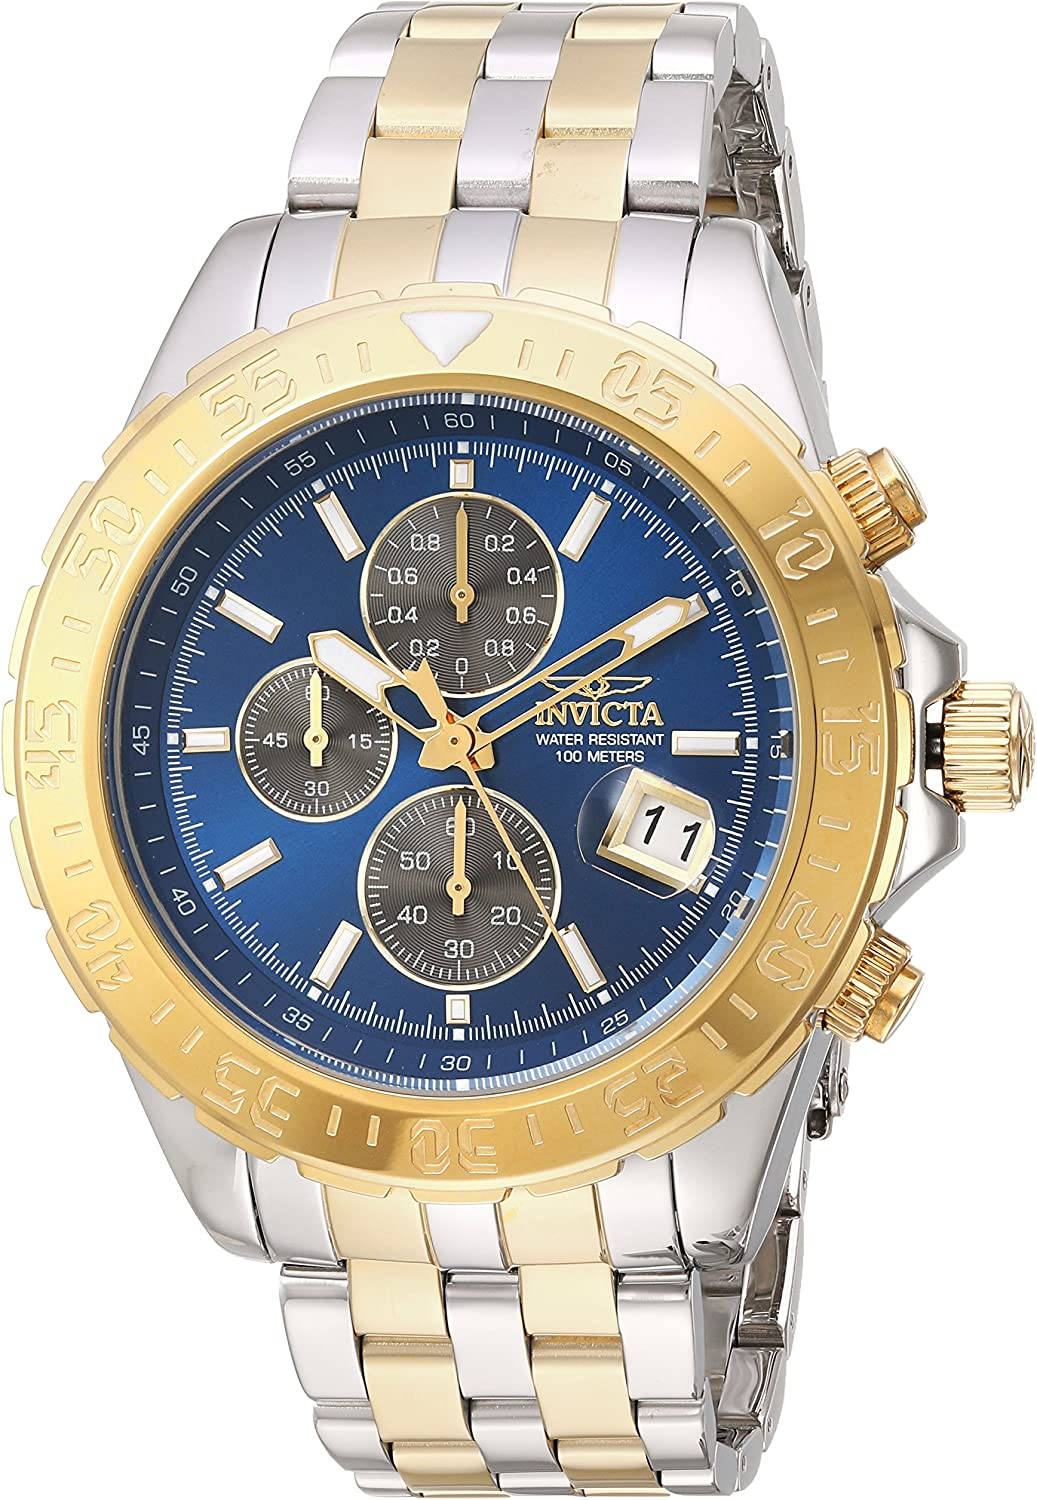 Invicta Men s Aviator Quartz Watch with Two-Tone-Stainless-Steel Strap, 22 Model 22989